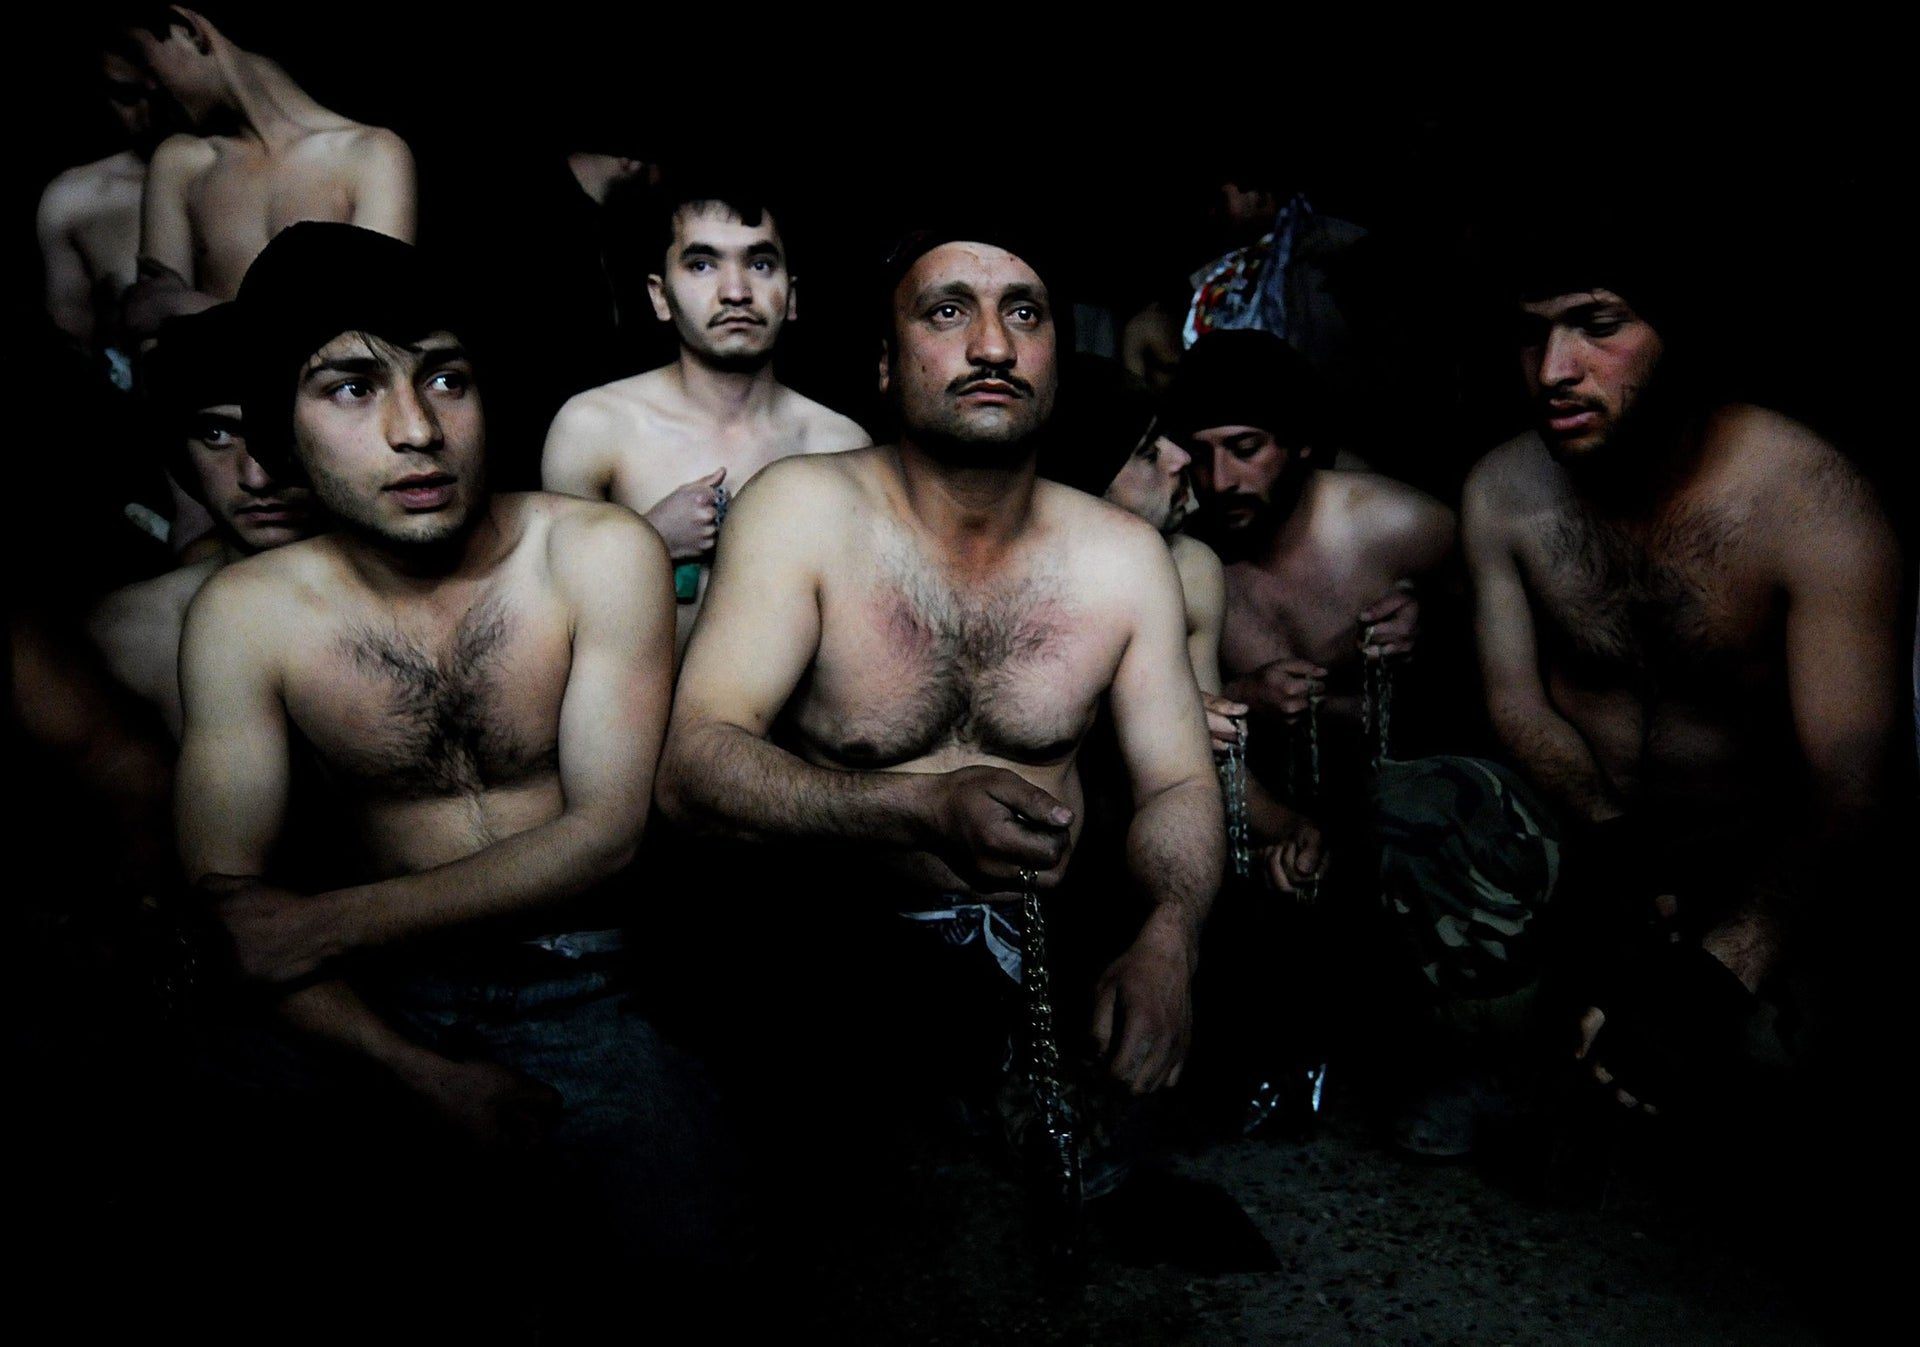 Afghan men hold chains as they wait to take part in ritual self-flagellation to celebrate the Muslim festival of Ashura, at a mosque in Kabul, January 15, 2008.